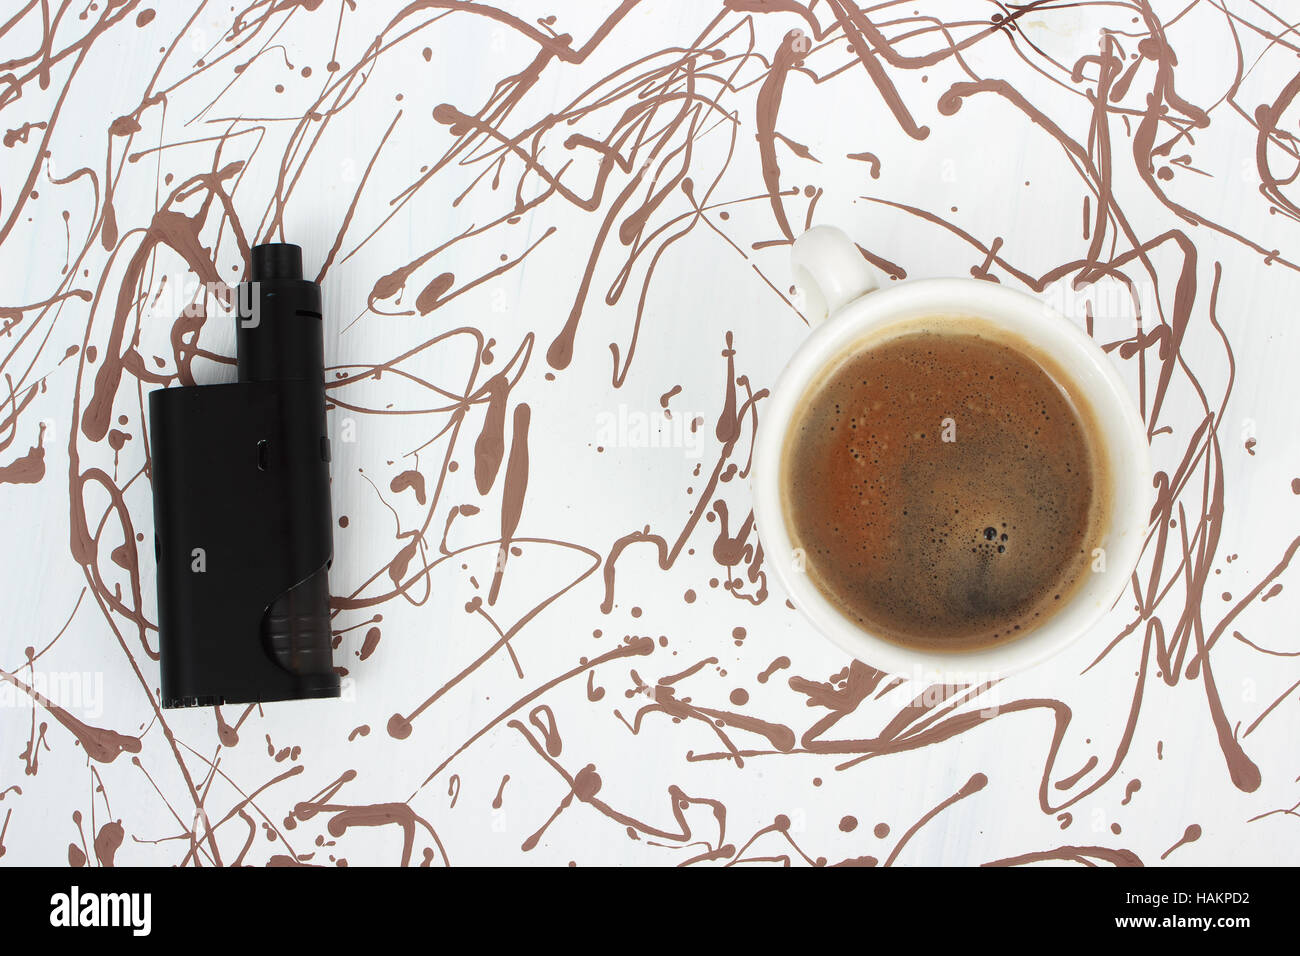 Vaping set and coffee - Stock Image